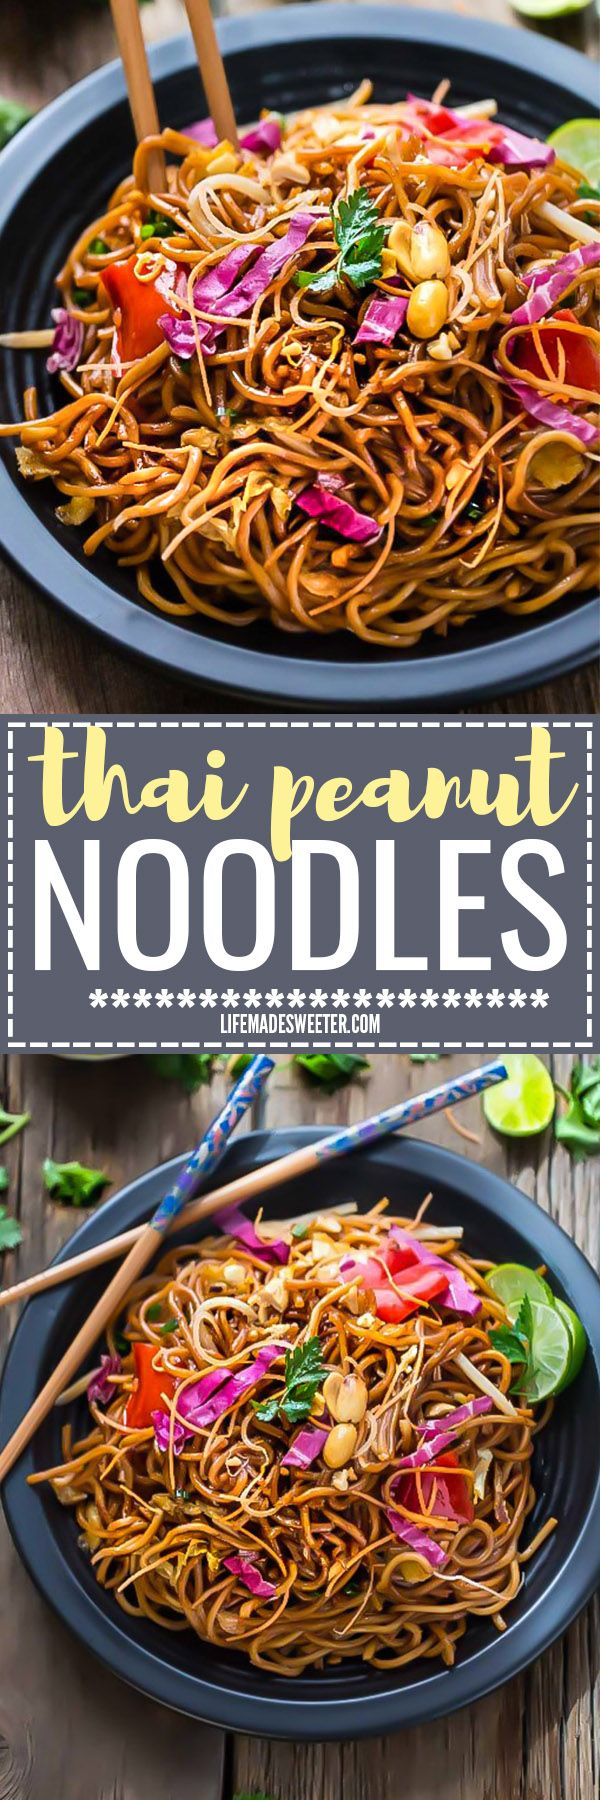 Rainbow Asian Peanut Noodles makes the perfect easy weeknight dish. Best of all, full of delicious authentic Thai flavors with a creamy peanut sauce and vegetables of your choice. Ready in under 30 minutes in just ONE pan! Great for Sunday meal prep for work or lunch bowls!